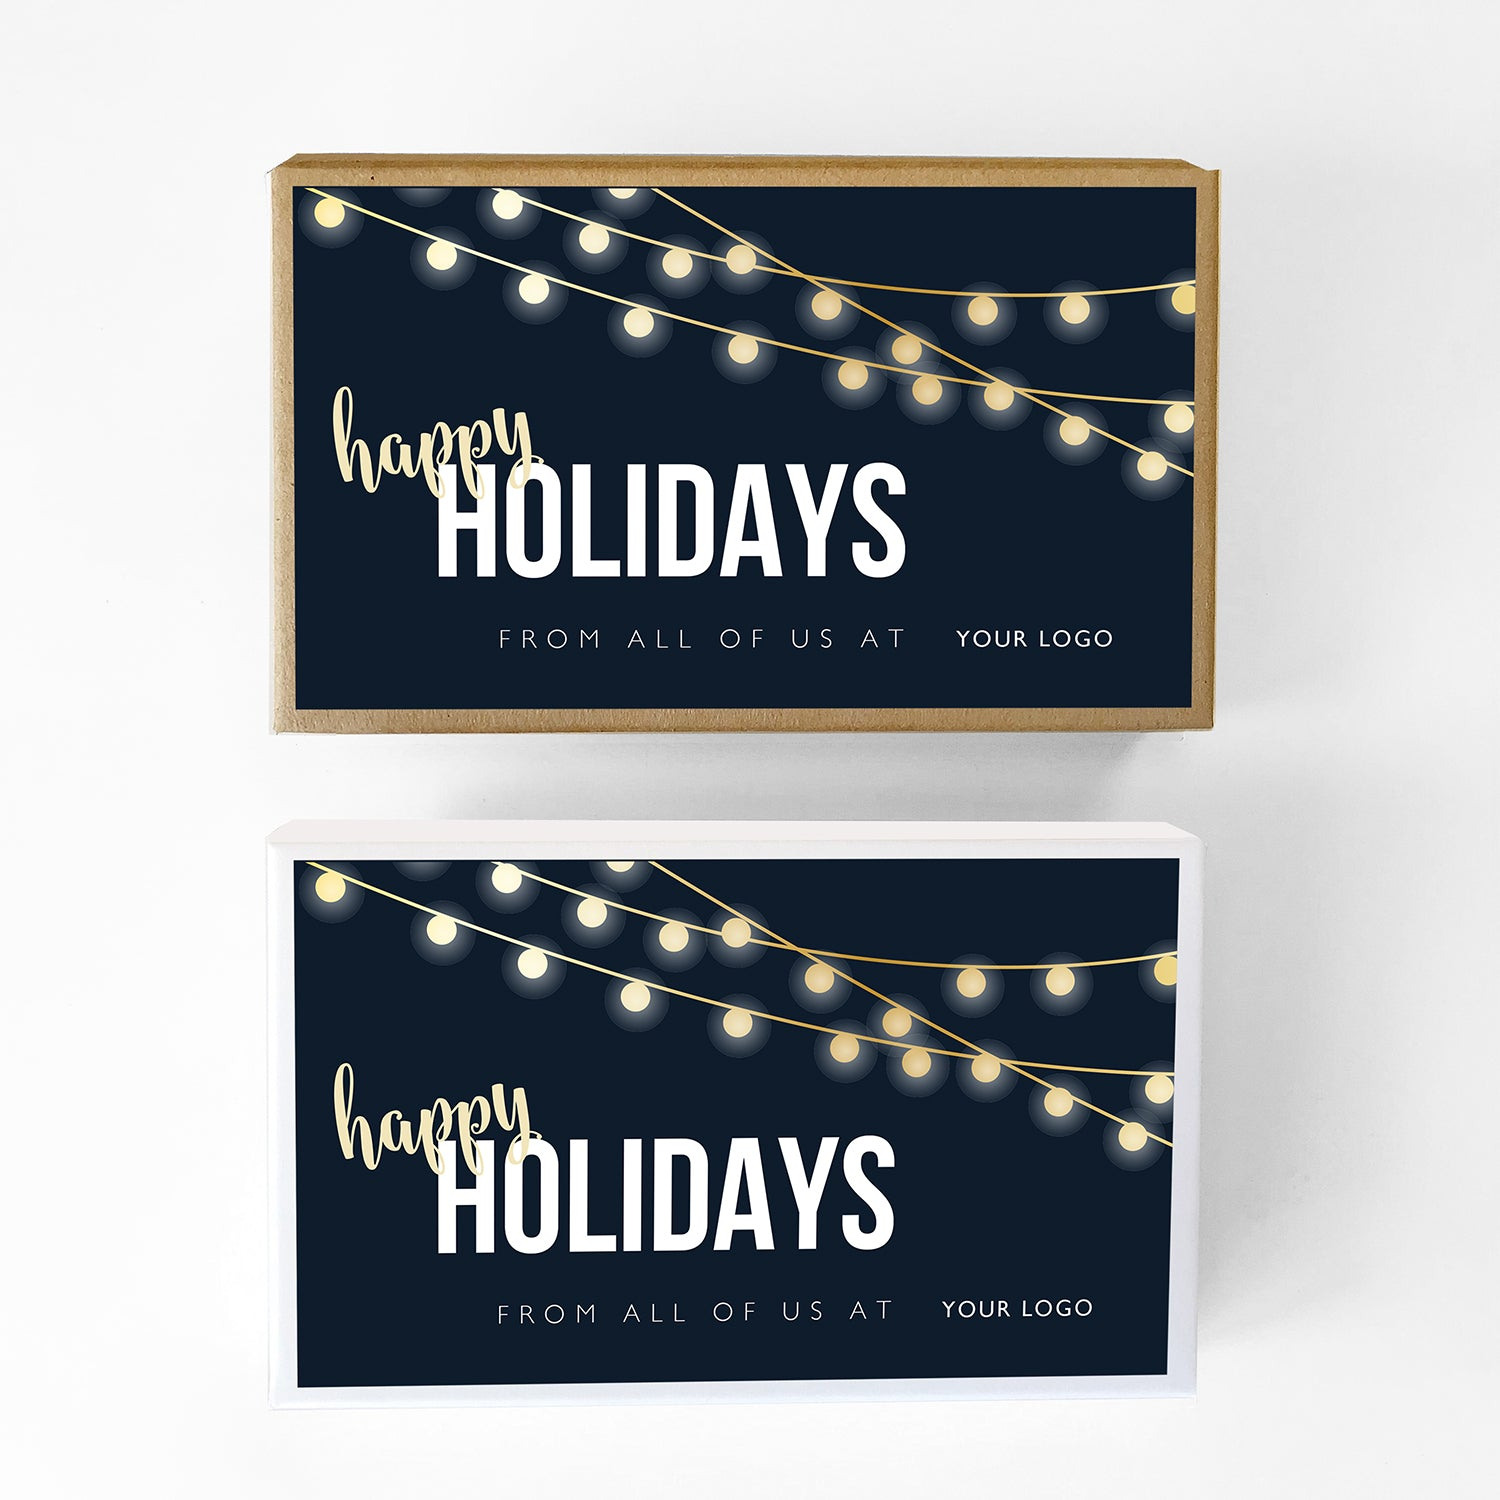 String Lights Custom Caramel Holiday Gift Box